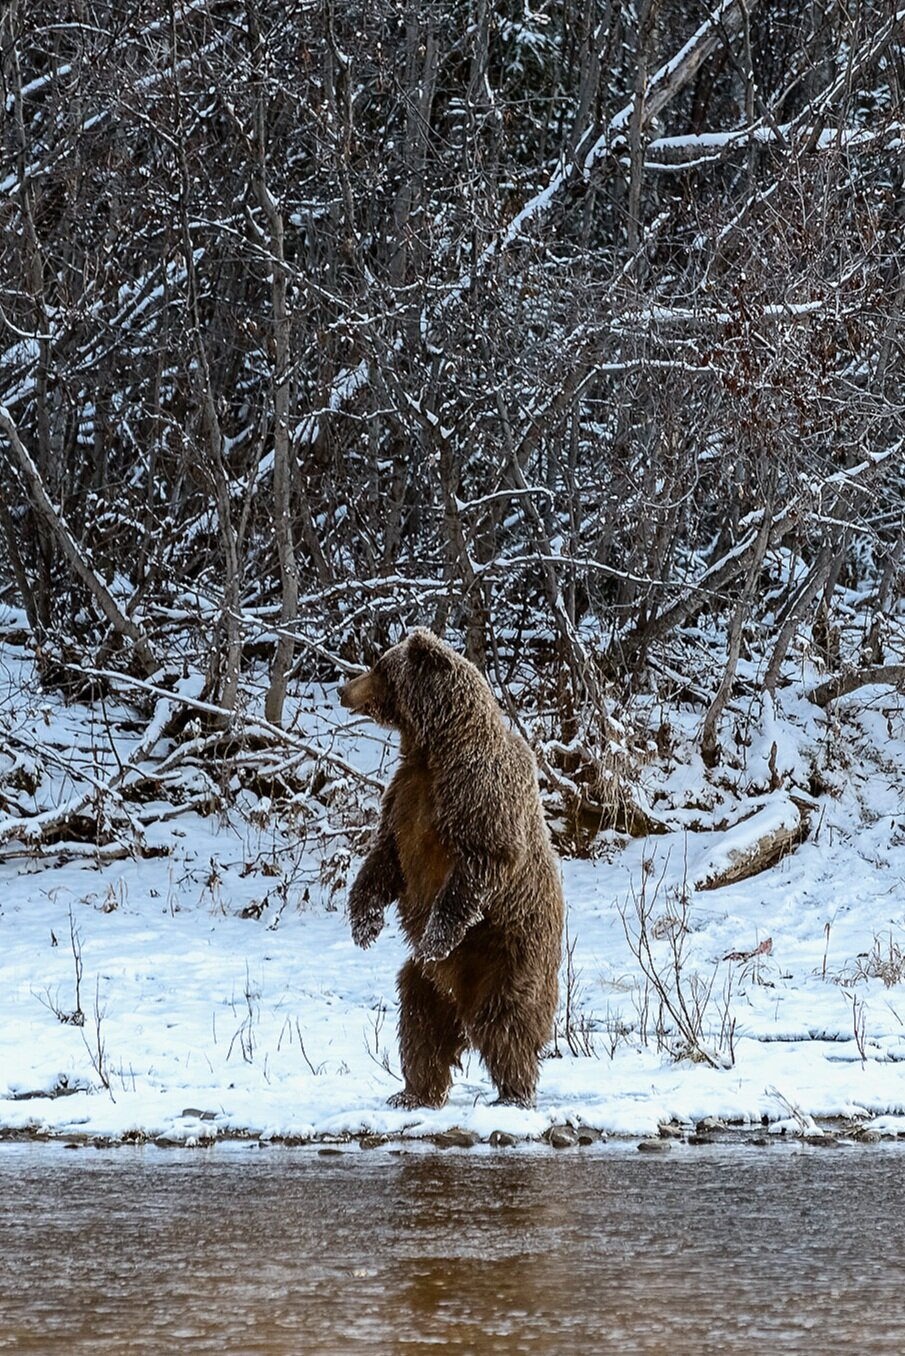 Ice Grizzly Mother Standing For a Better Look - Yukon Territory, Canada